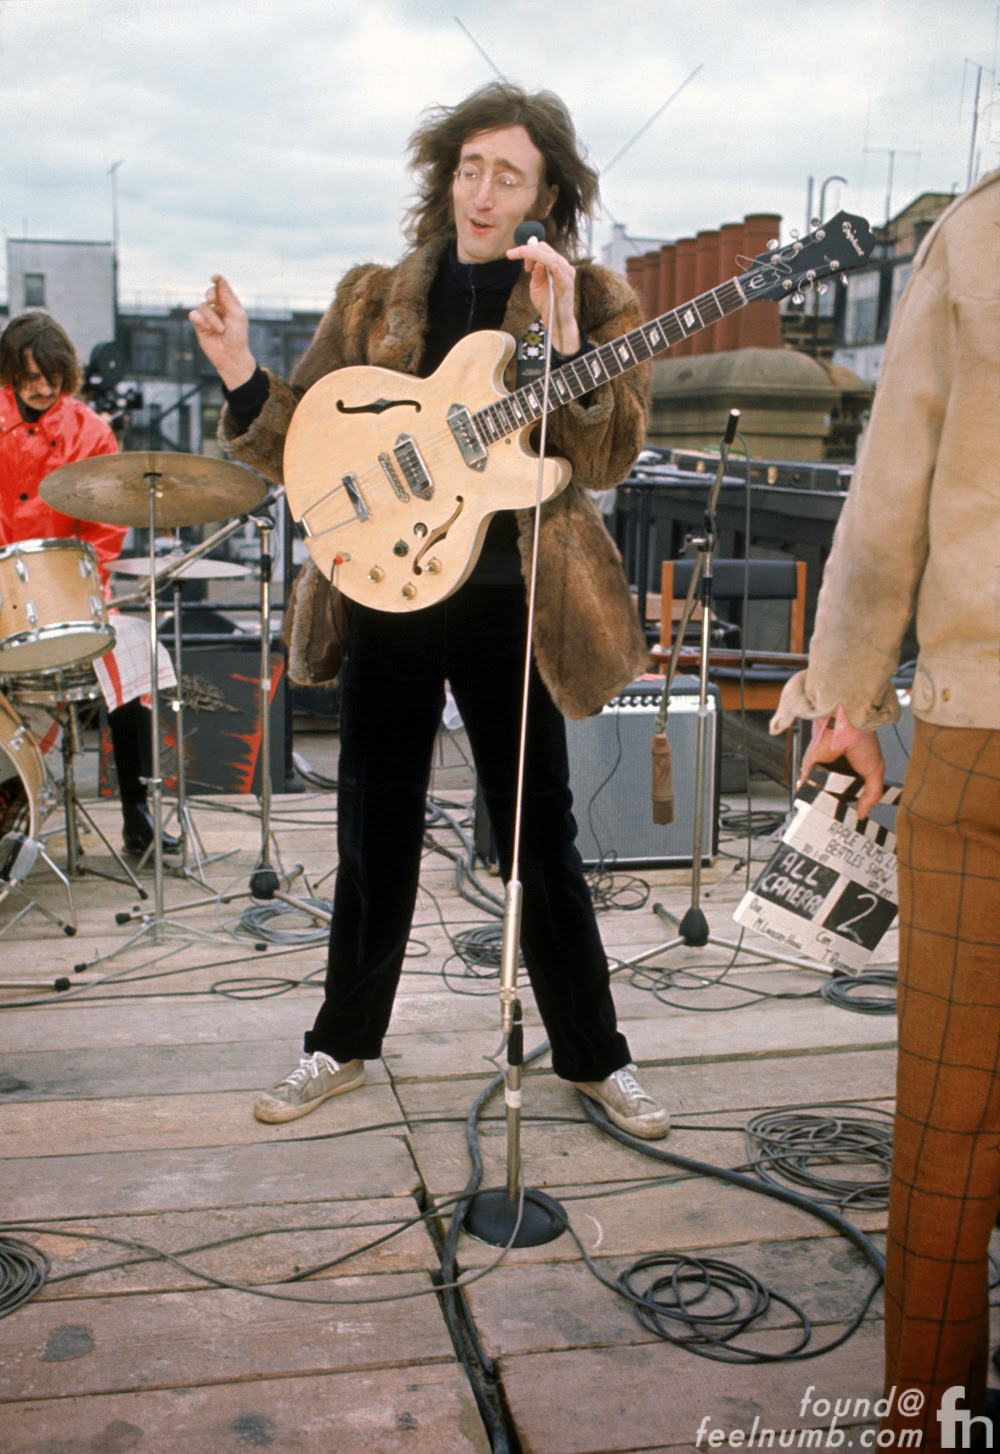 John Lennon The Beatles January 30, 1969 Rooftop Apple Records Offices Savile Row